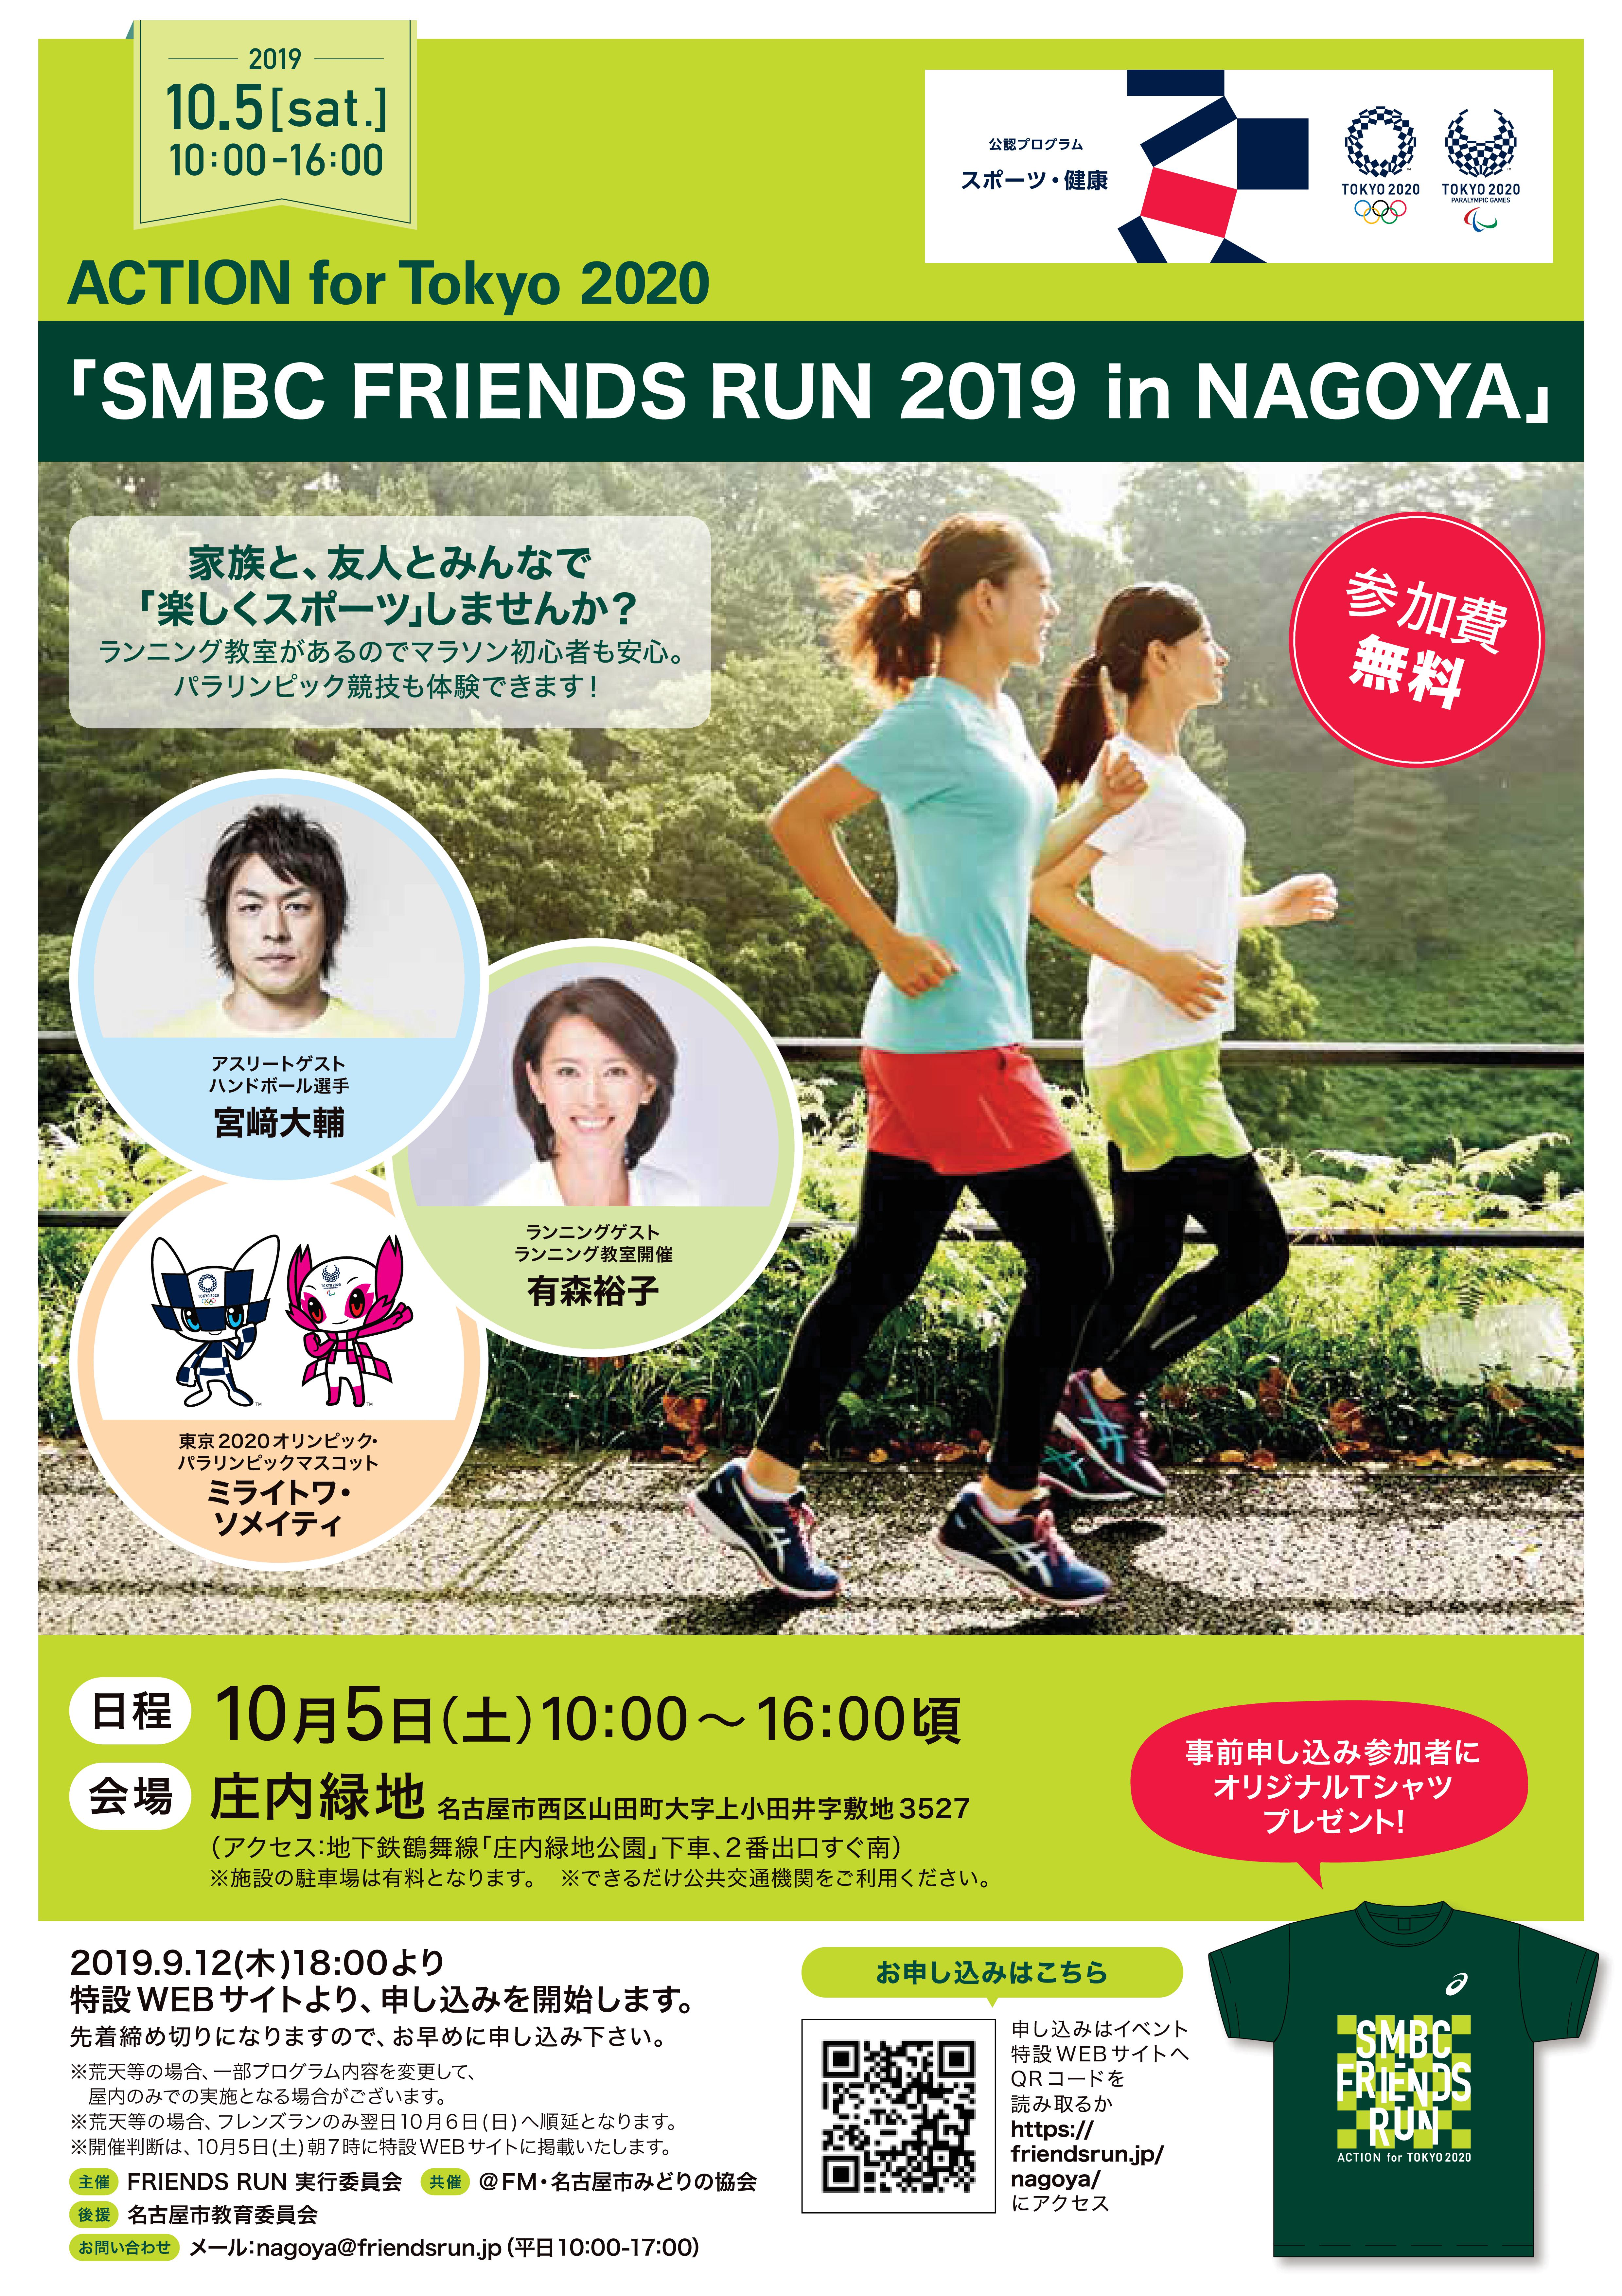 10/5 ACTION for Tokyo 2020「SMBC FRIENDS RUN 2019 in NAGOYA」